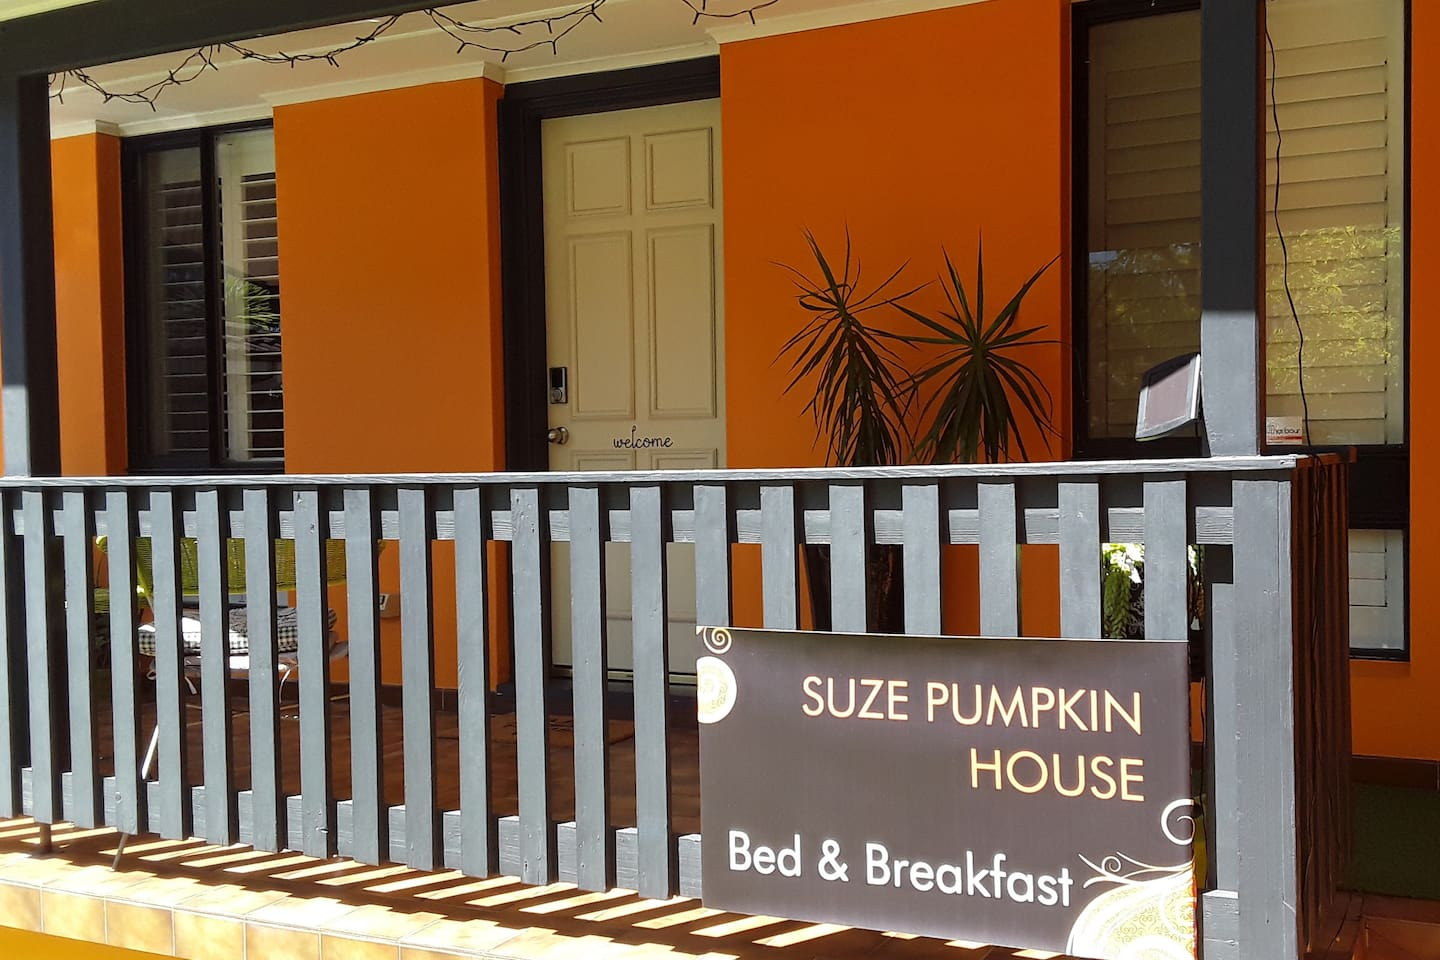 Welcome to Suze Pumpkin House